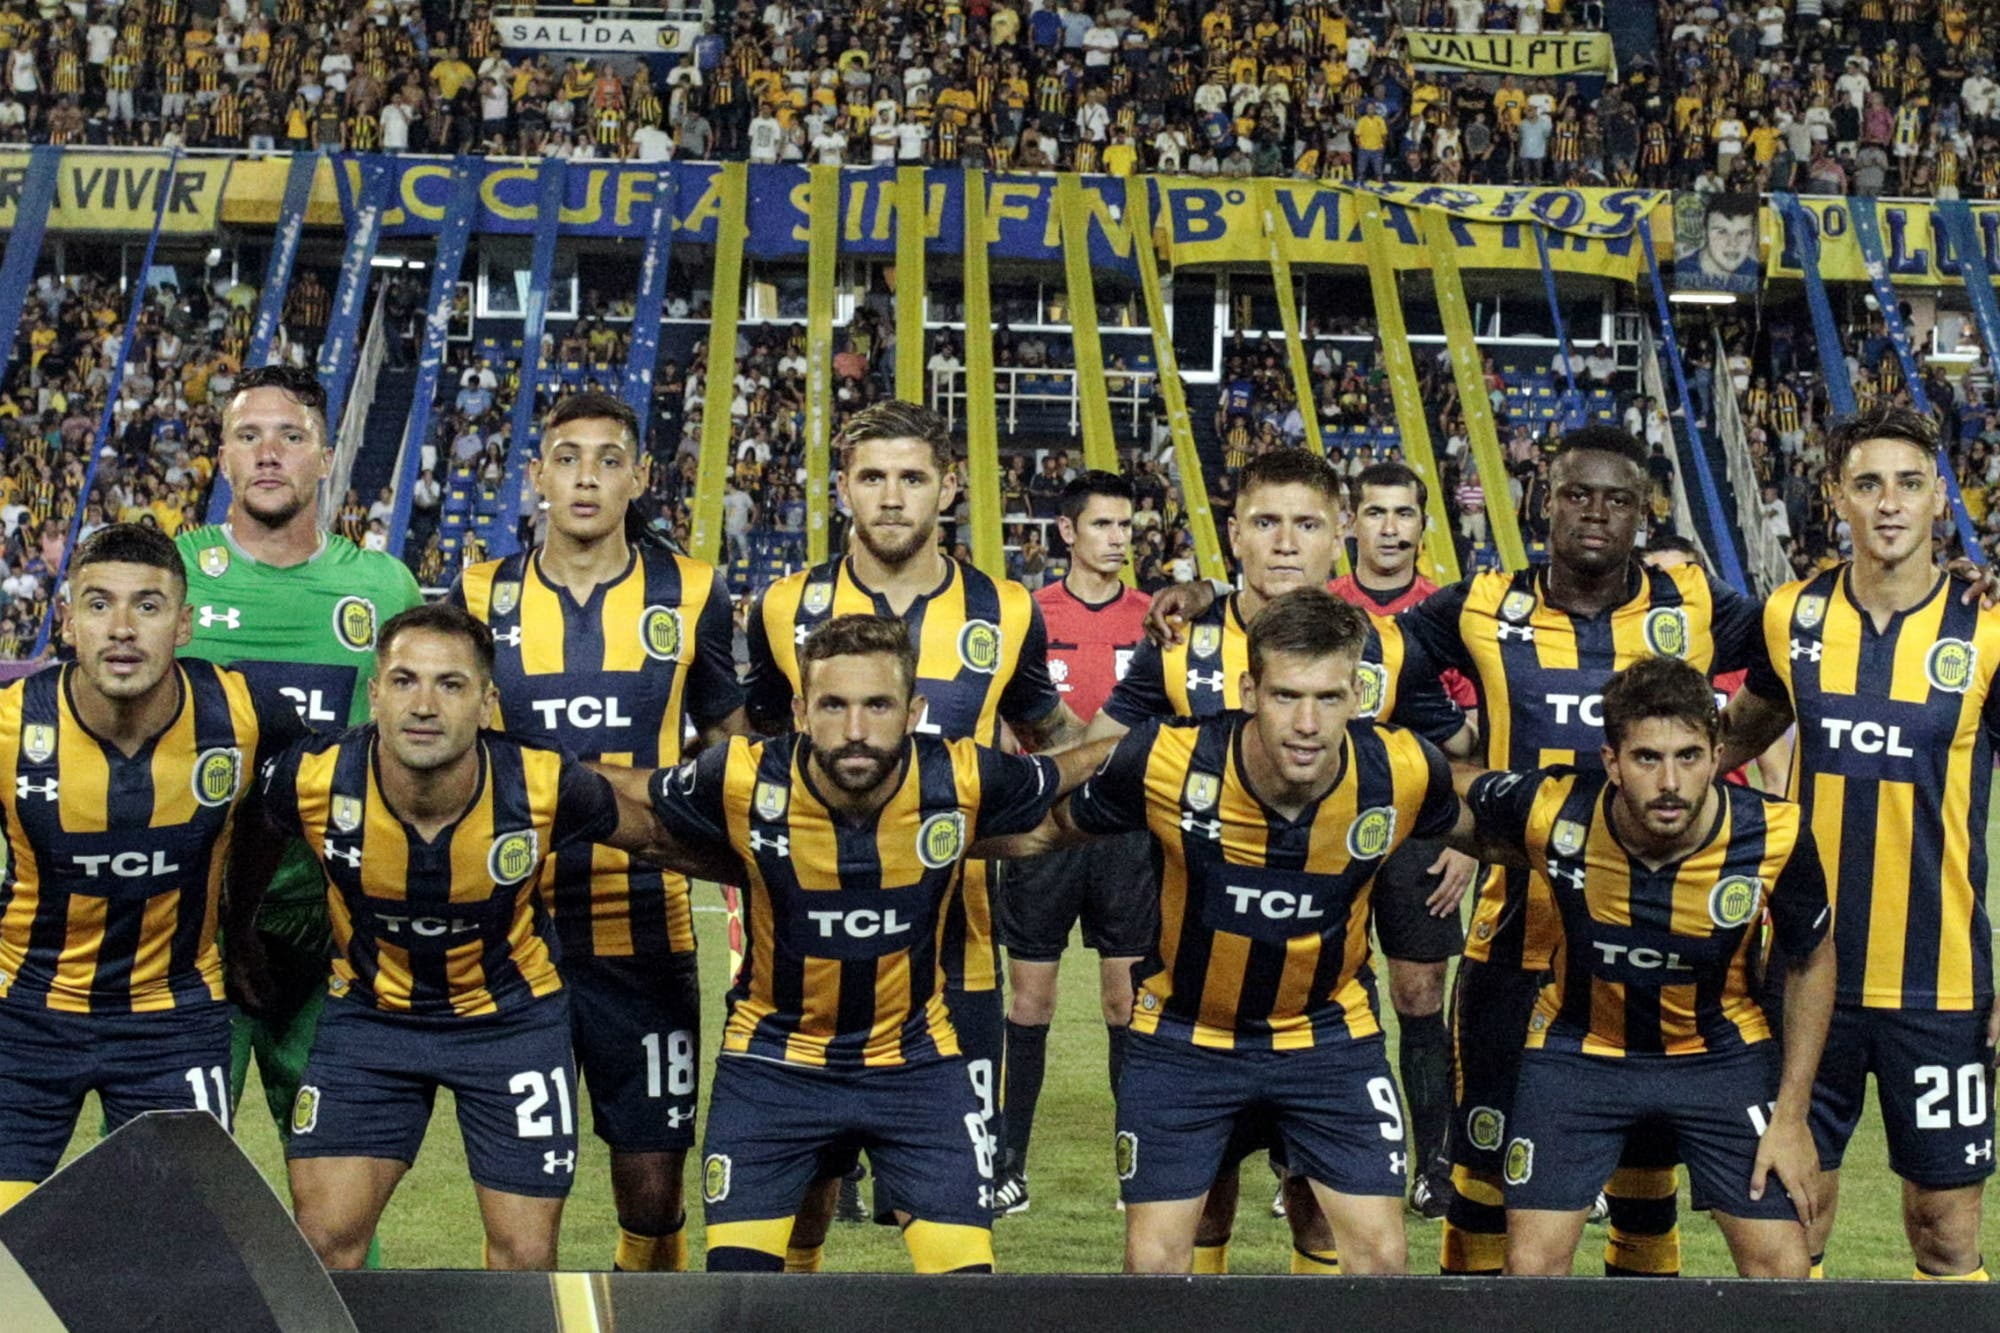 San Lorenzo-Rosario Central, por la Superliga: horario, TV y formaciones